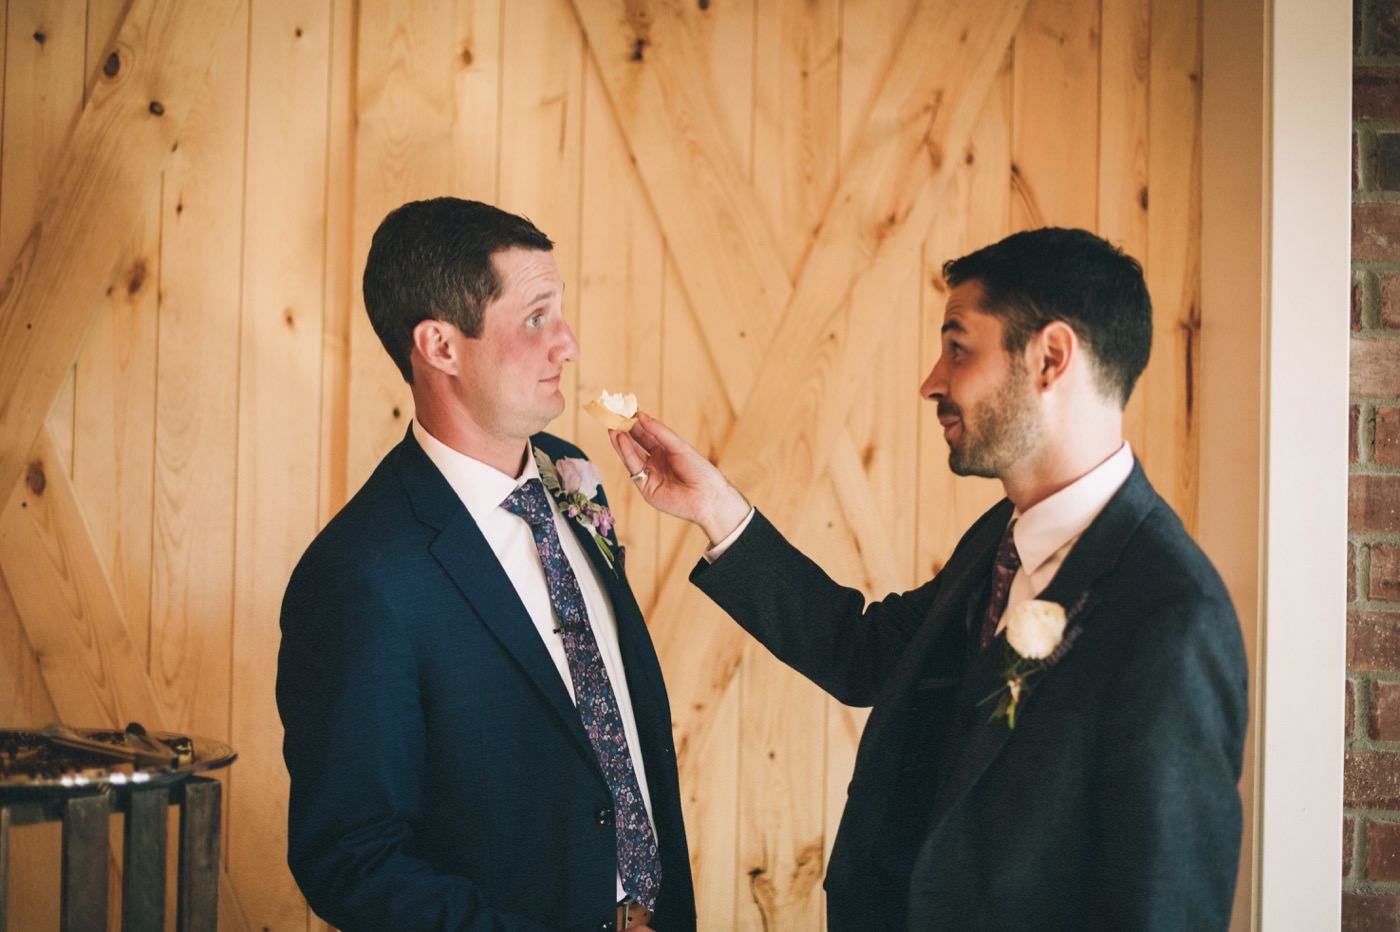 Will-Nate-Louisville-LGBTQ-Pride-Month-Kentucky-Wedding-By-Sarah-Katherine-Davis-Photograpy0049.JPG